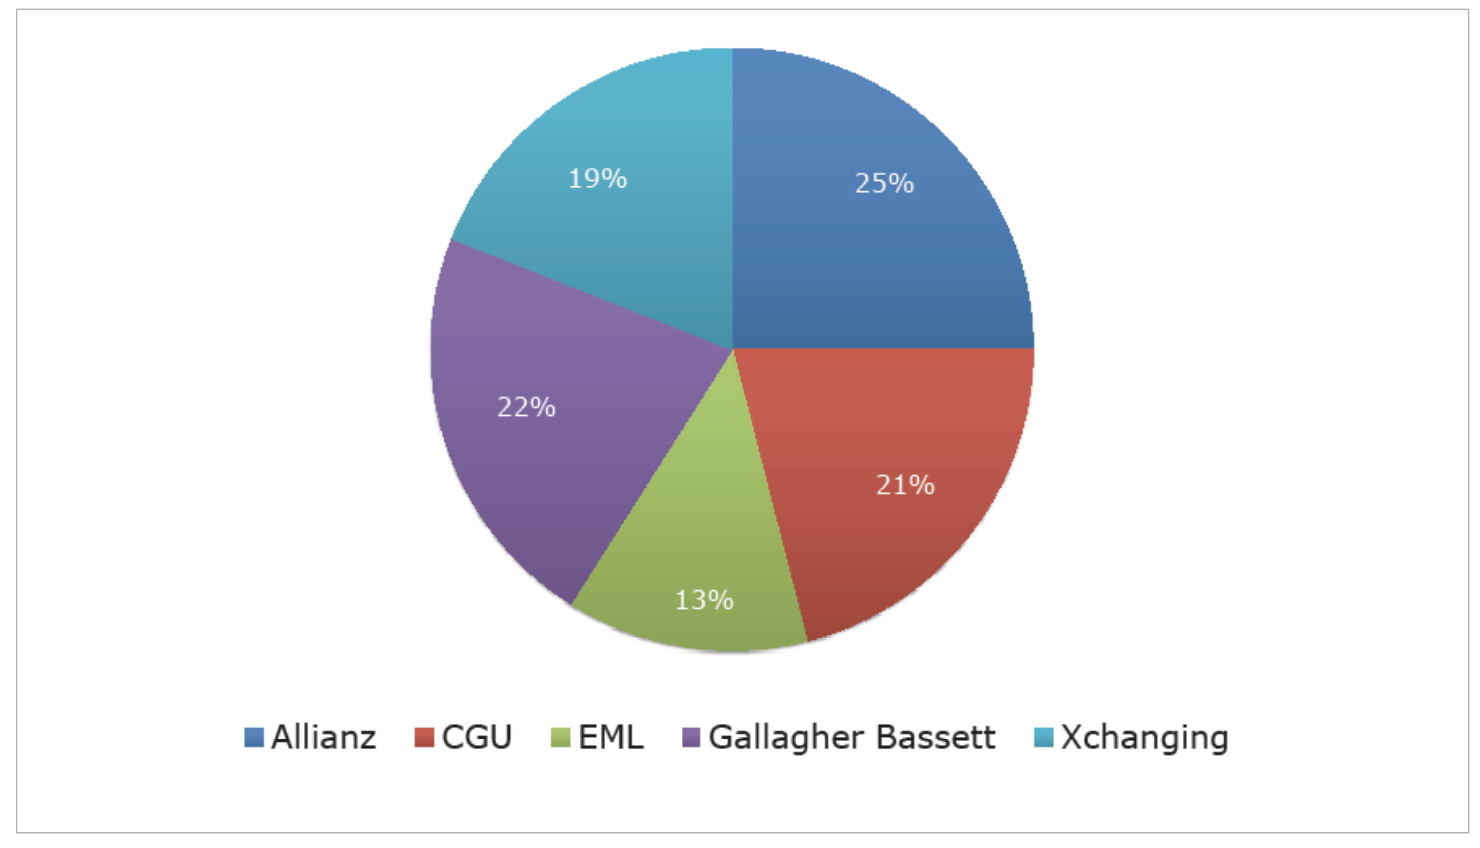 Agent Market share as at 30 June 2018